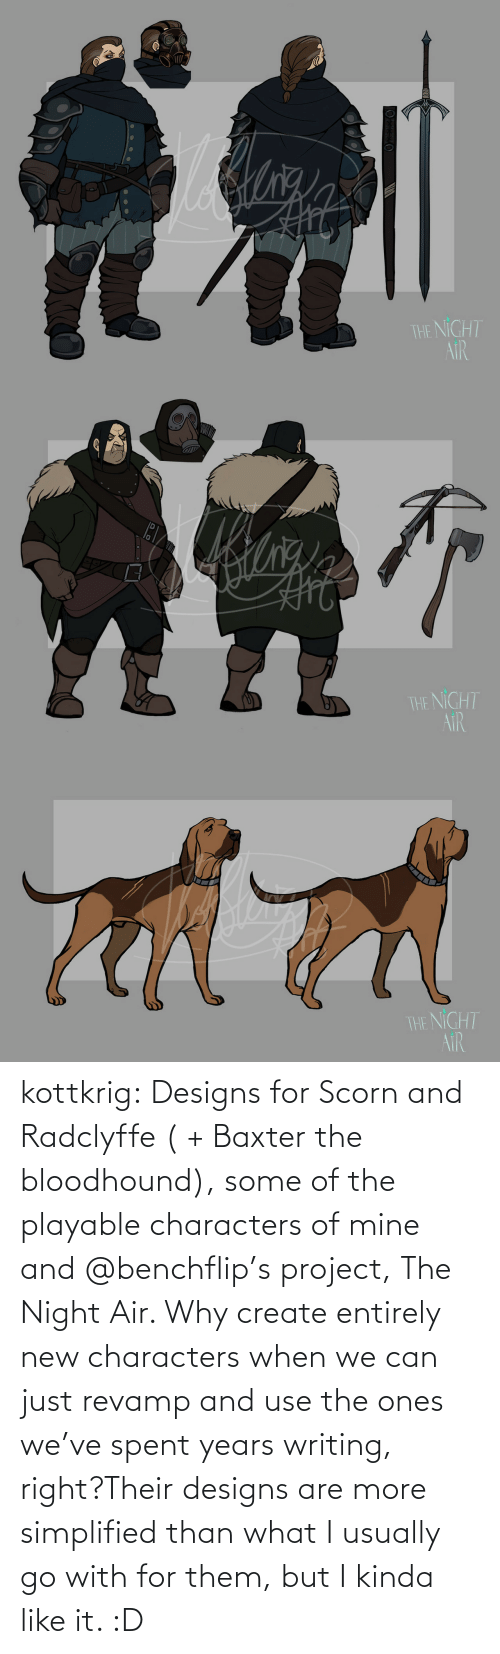 air: kottkrig:  Designs for Scorn and Radclyffe ( + Baxter the bloodhound), some of the playable characters of mine and @benchflip's project, The Night Air. Why create entirely new characters when we can just revamp and use the ones we've spent years writing, right?Their designs are more simplified than what I usually go with for them, but I kinda like it. :D